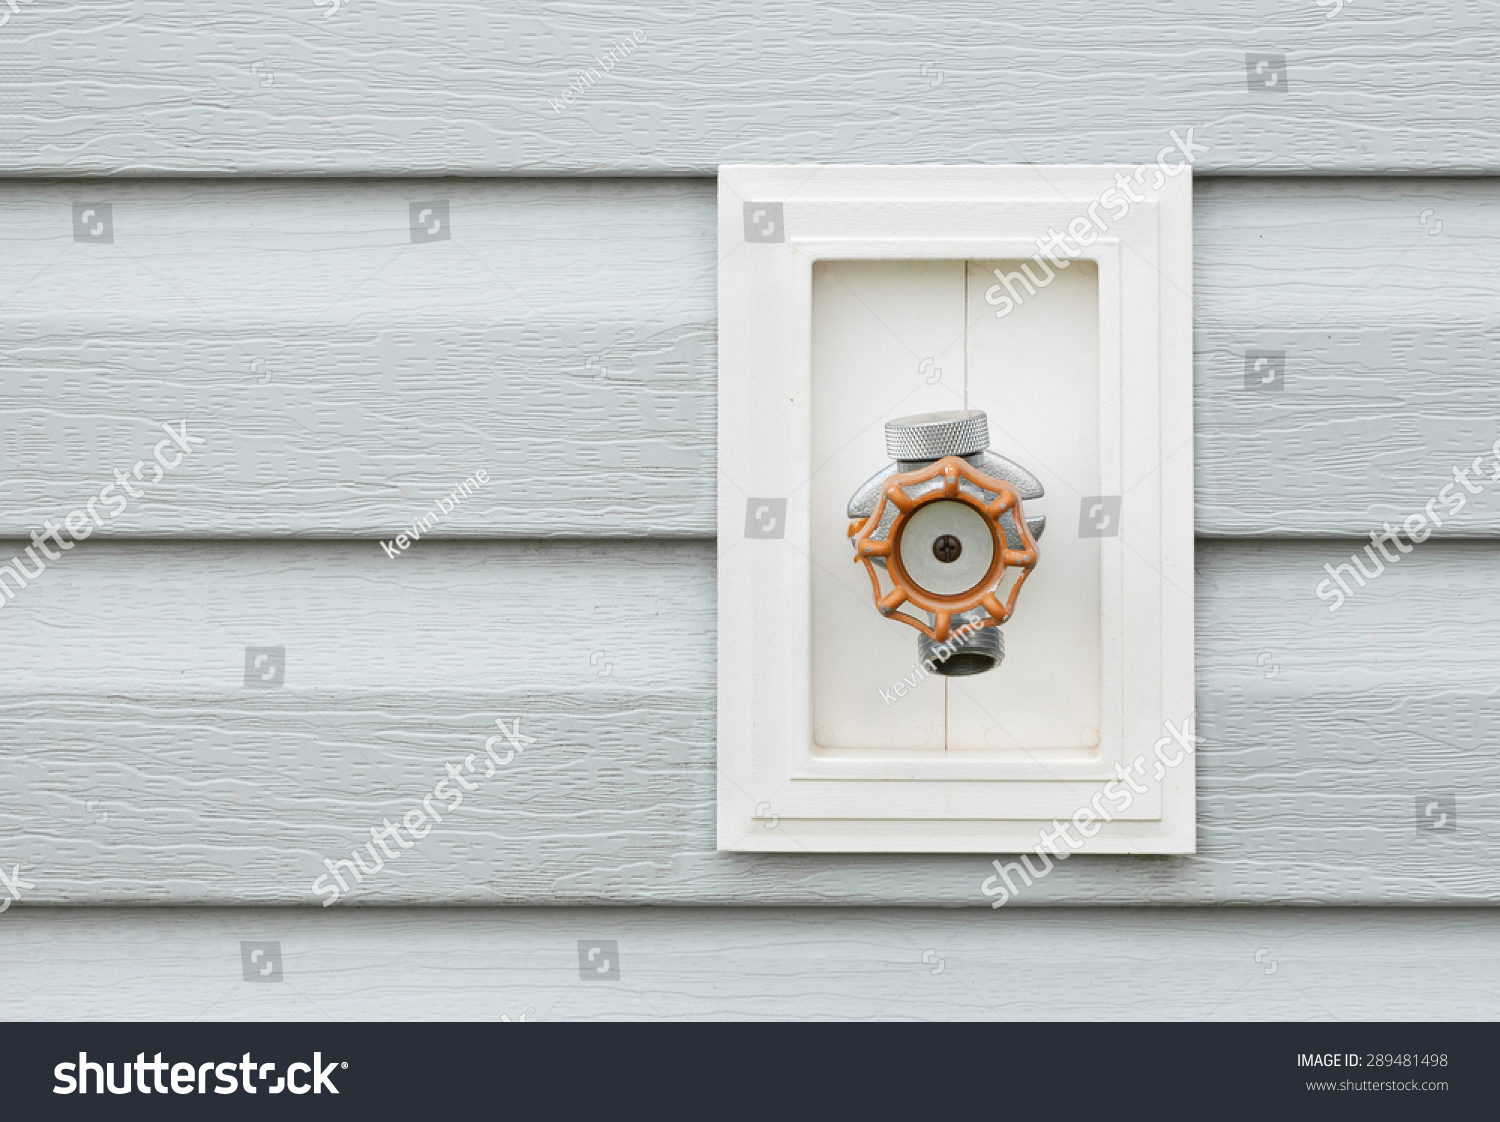 Outdoor Water Faucet On Exterior House Siding Stock Photo